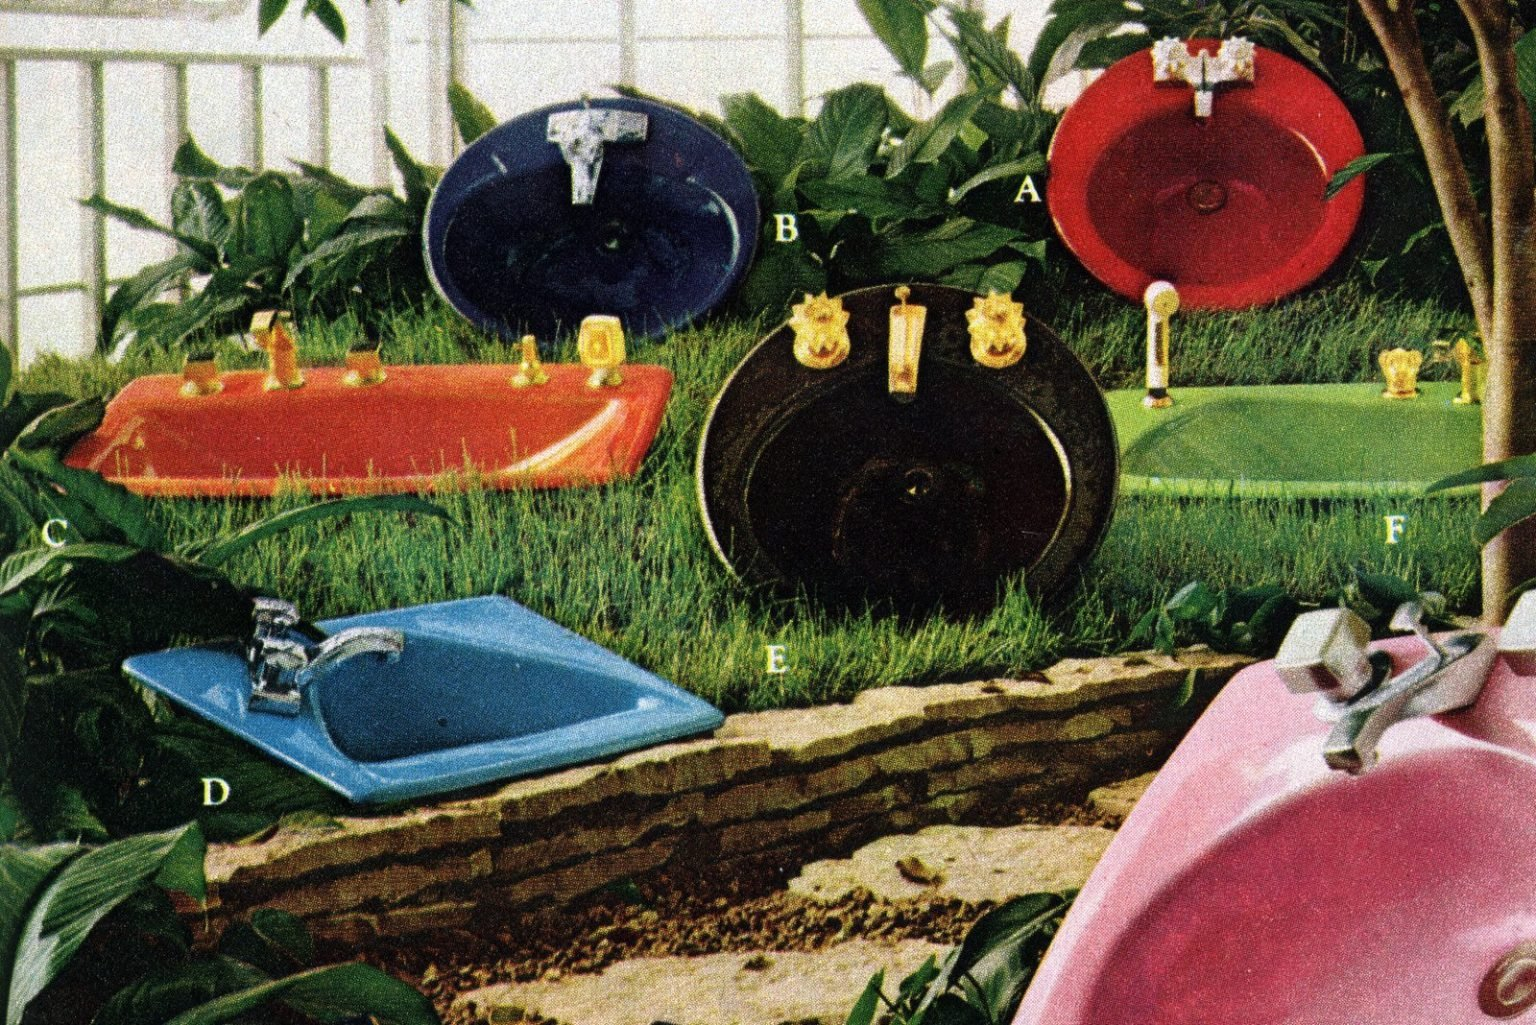 Colorful Kohler bathroom suites from the 1960s and 1970s